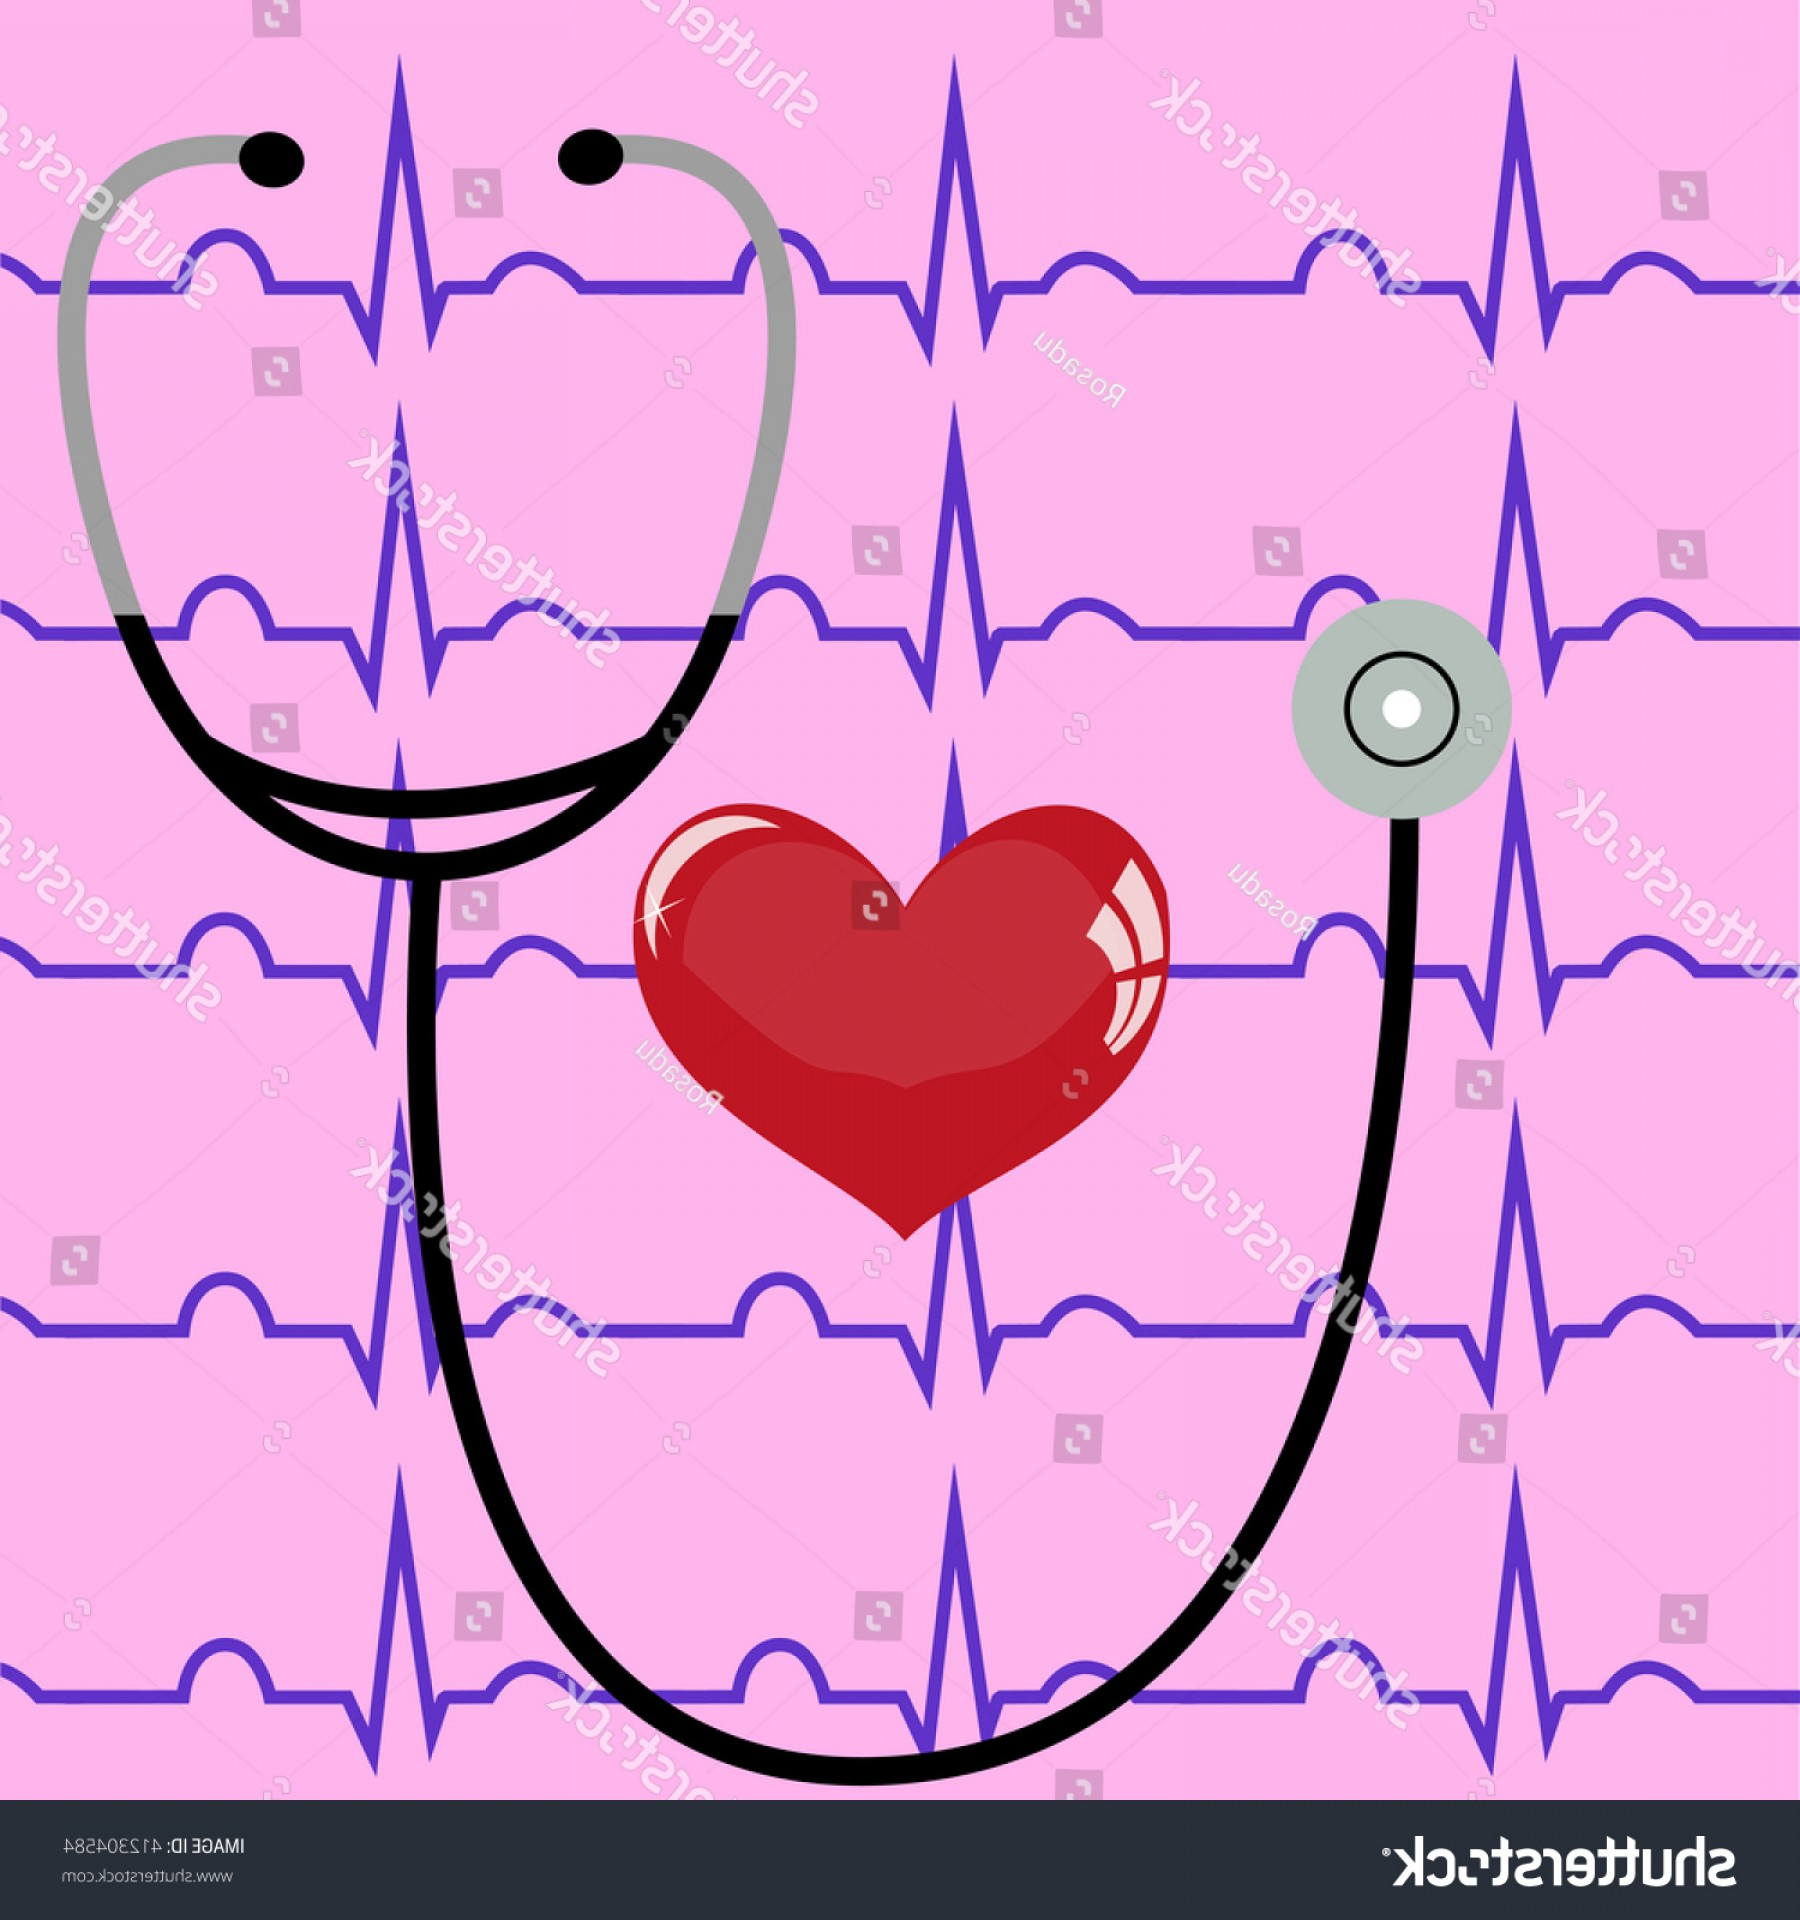 Heart Stethoscope With EKG Lines Vector: Stethoscope Heart On Pink Background Ecg